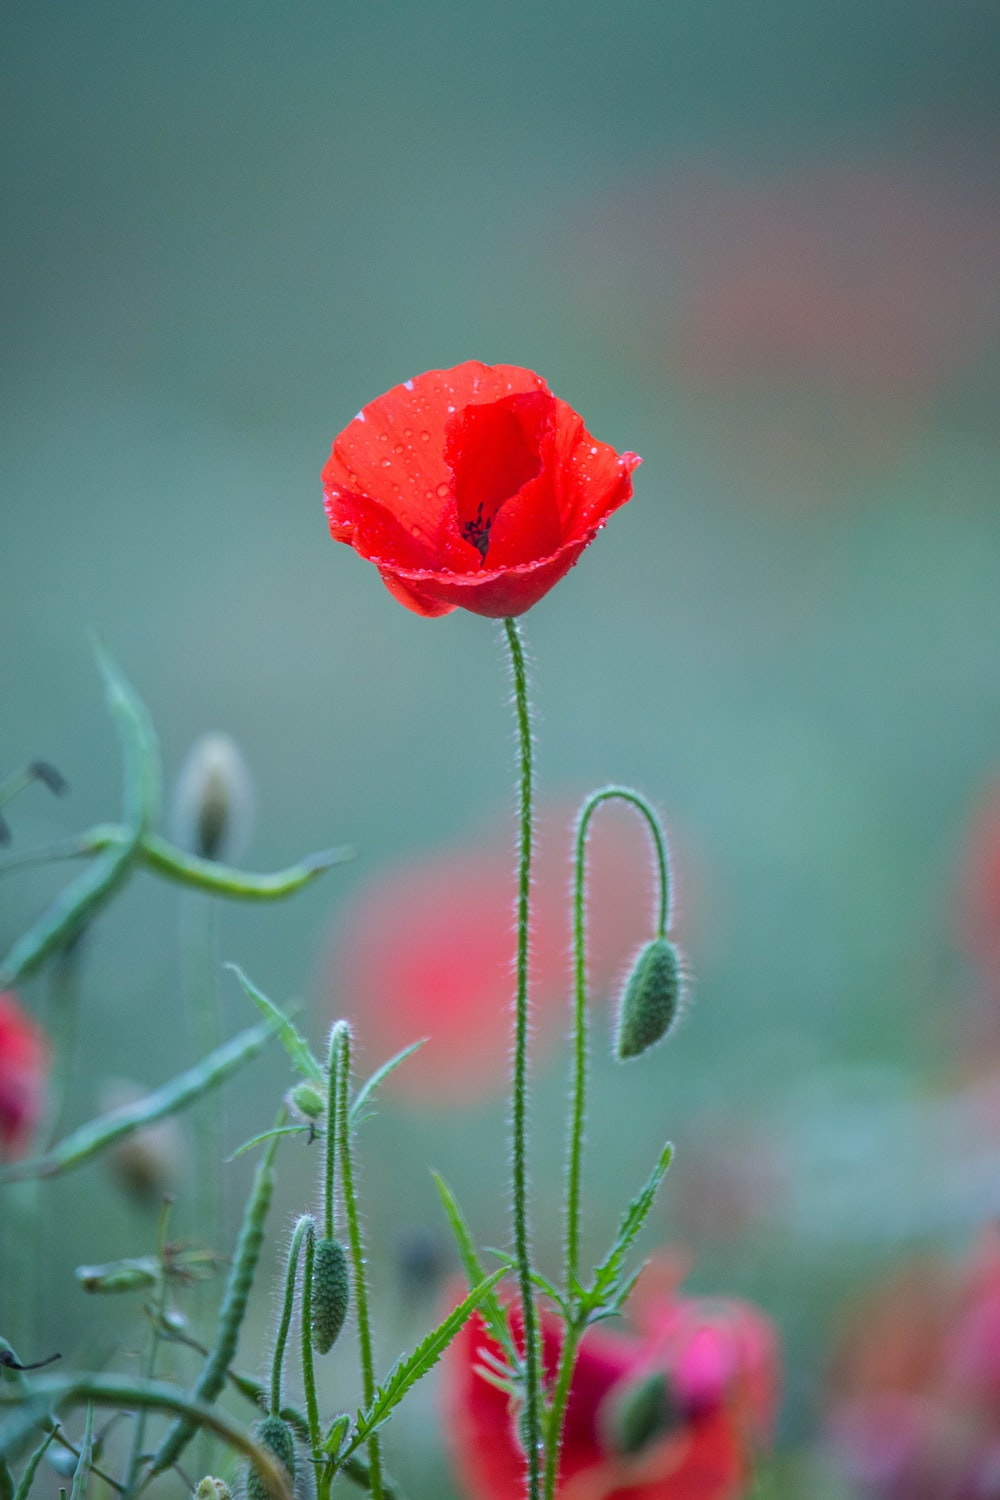 red petaled flower close-up photography